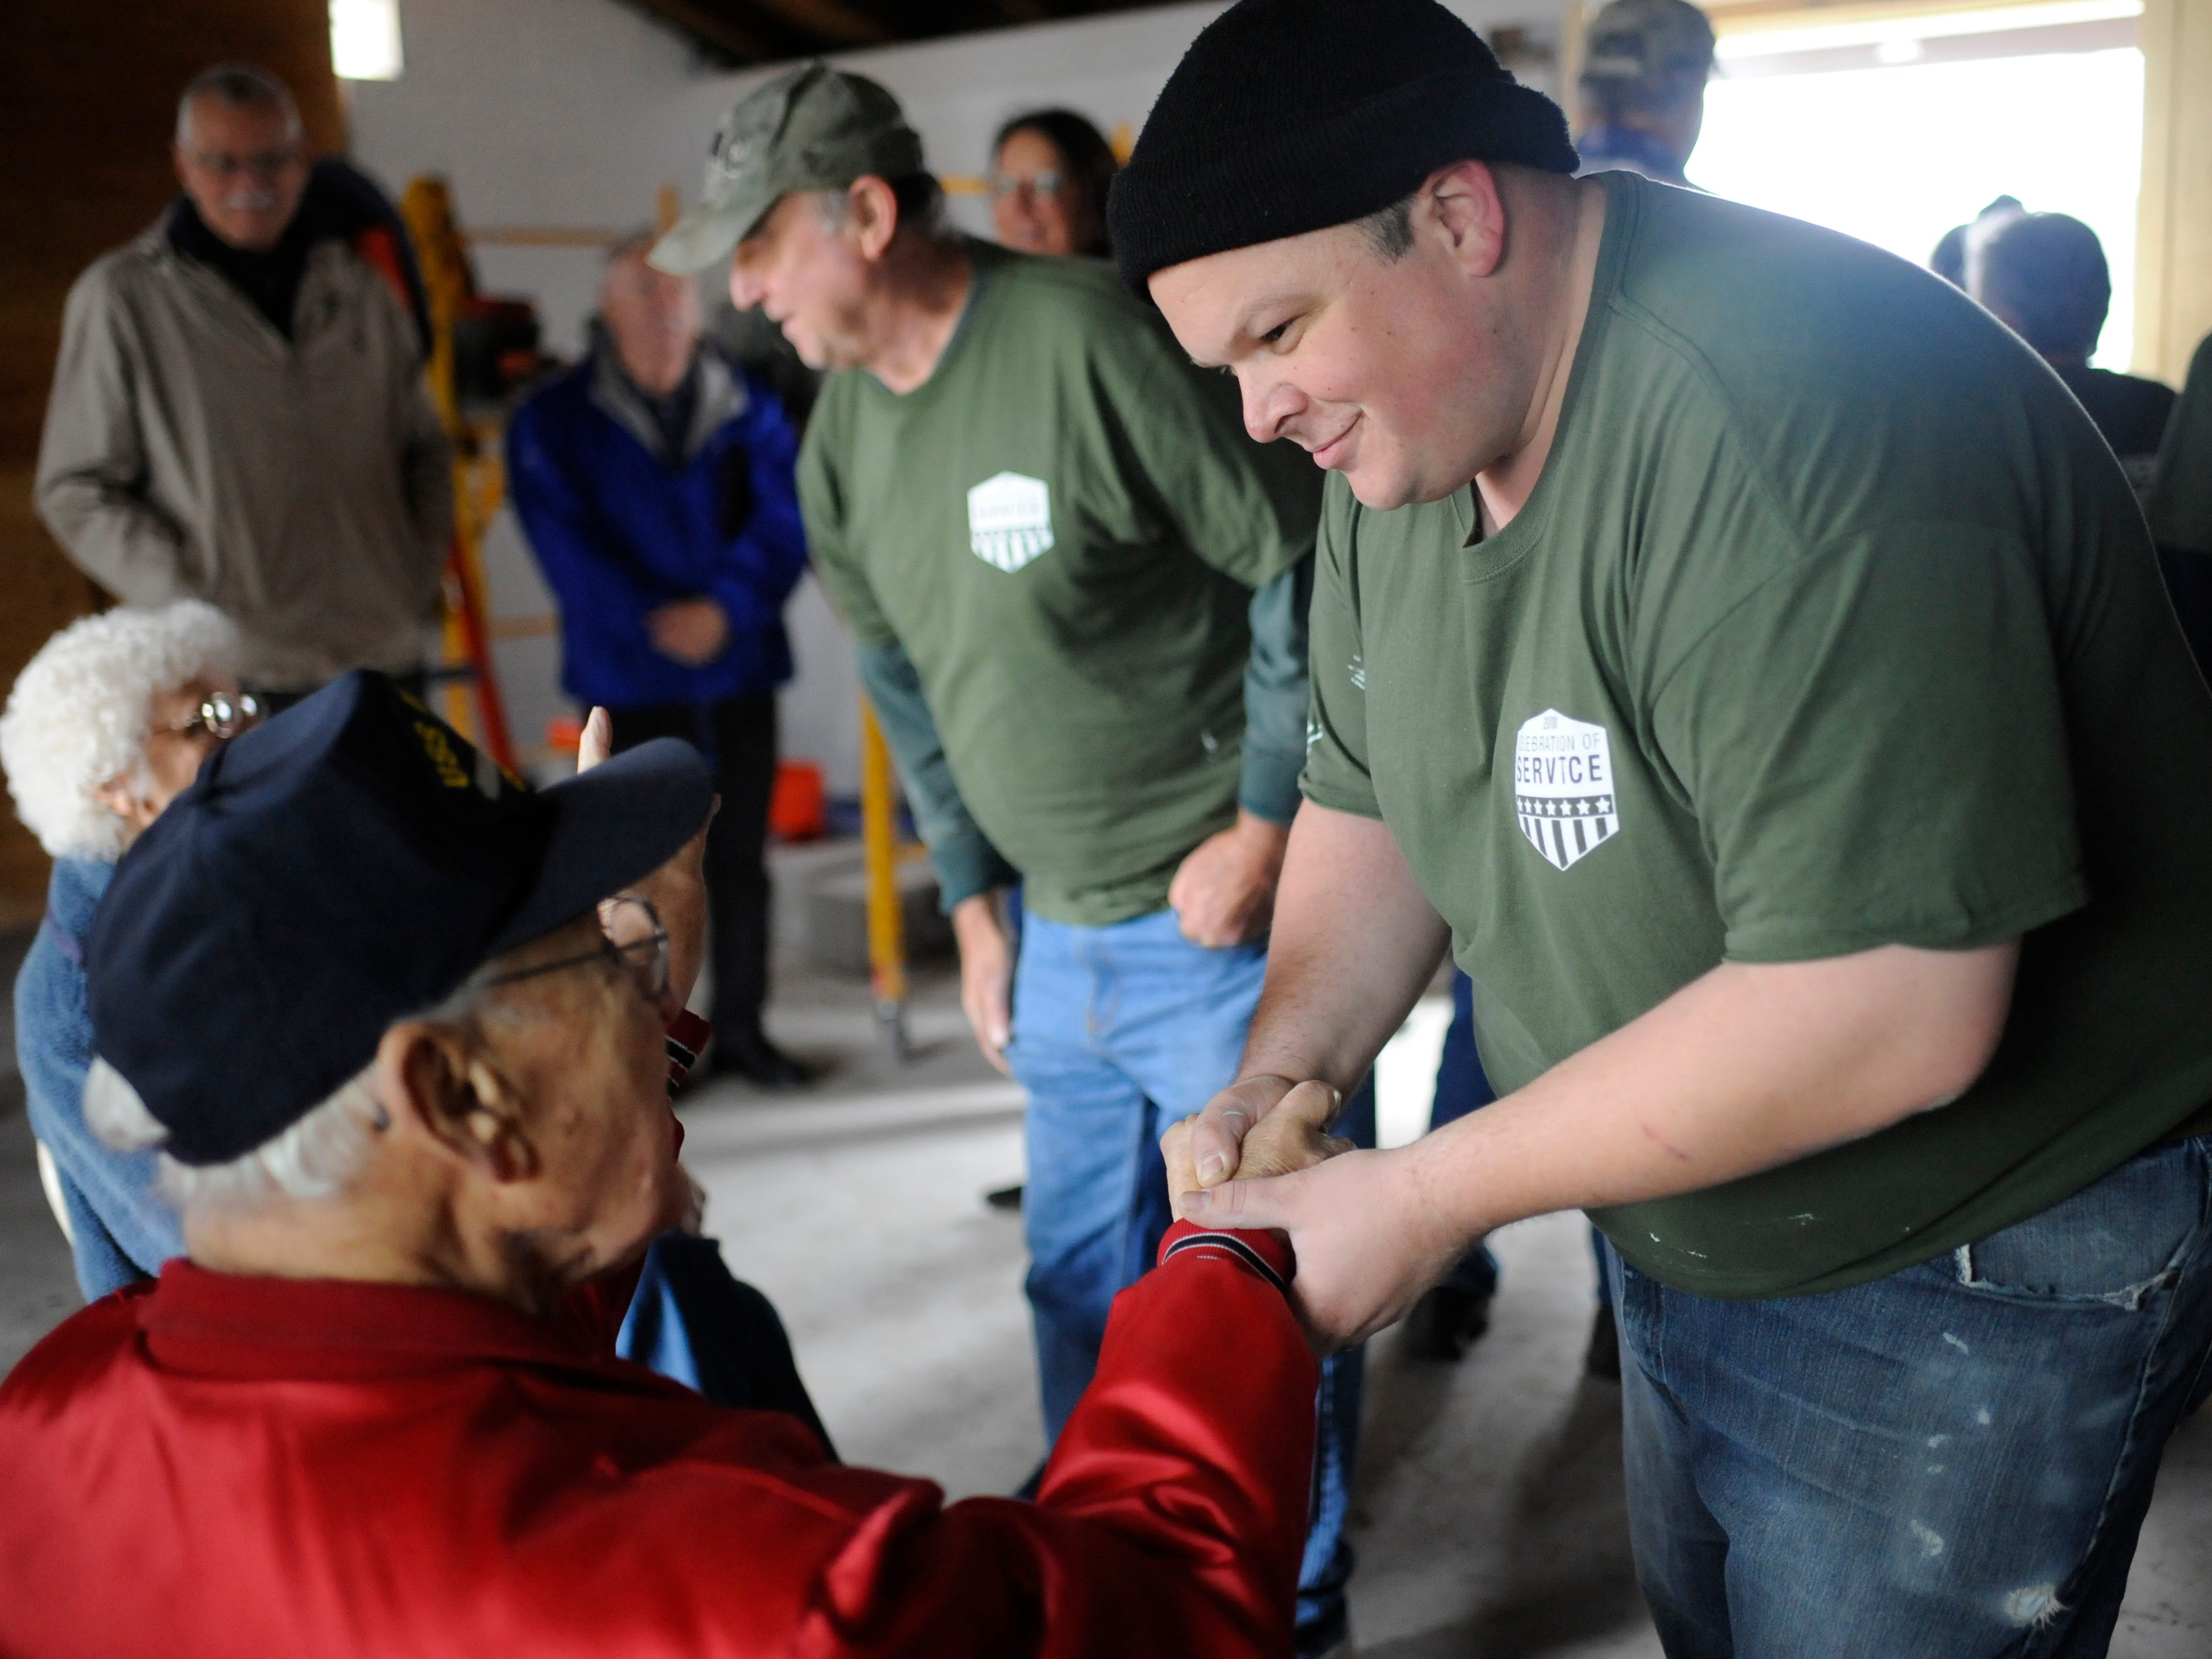 Steven England, Vineland Home Depot assistant manager and community captain, shakes the hand of Owen Garrison, a 93-year-old WWII Navy Veteran and Millville Army Airfield Museum volunteer during a building renovation event on Friday, November 9, 2018.